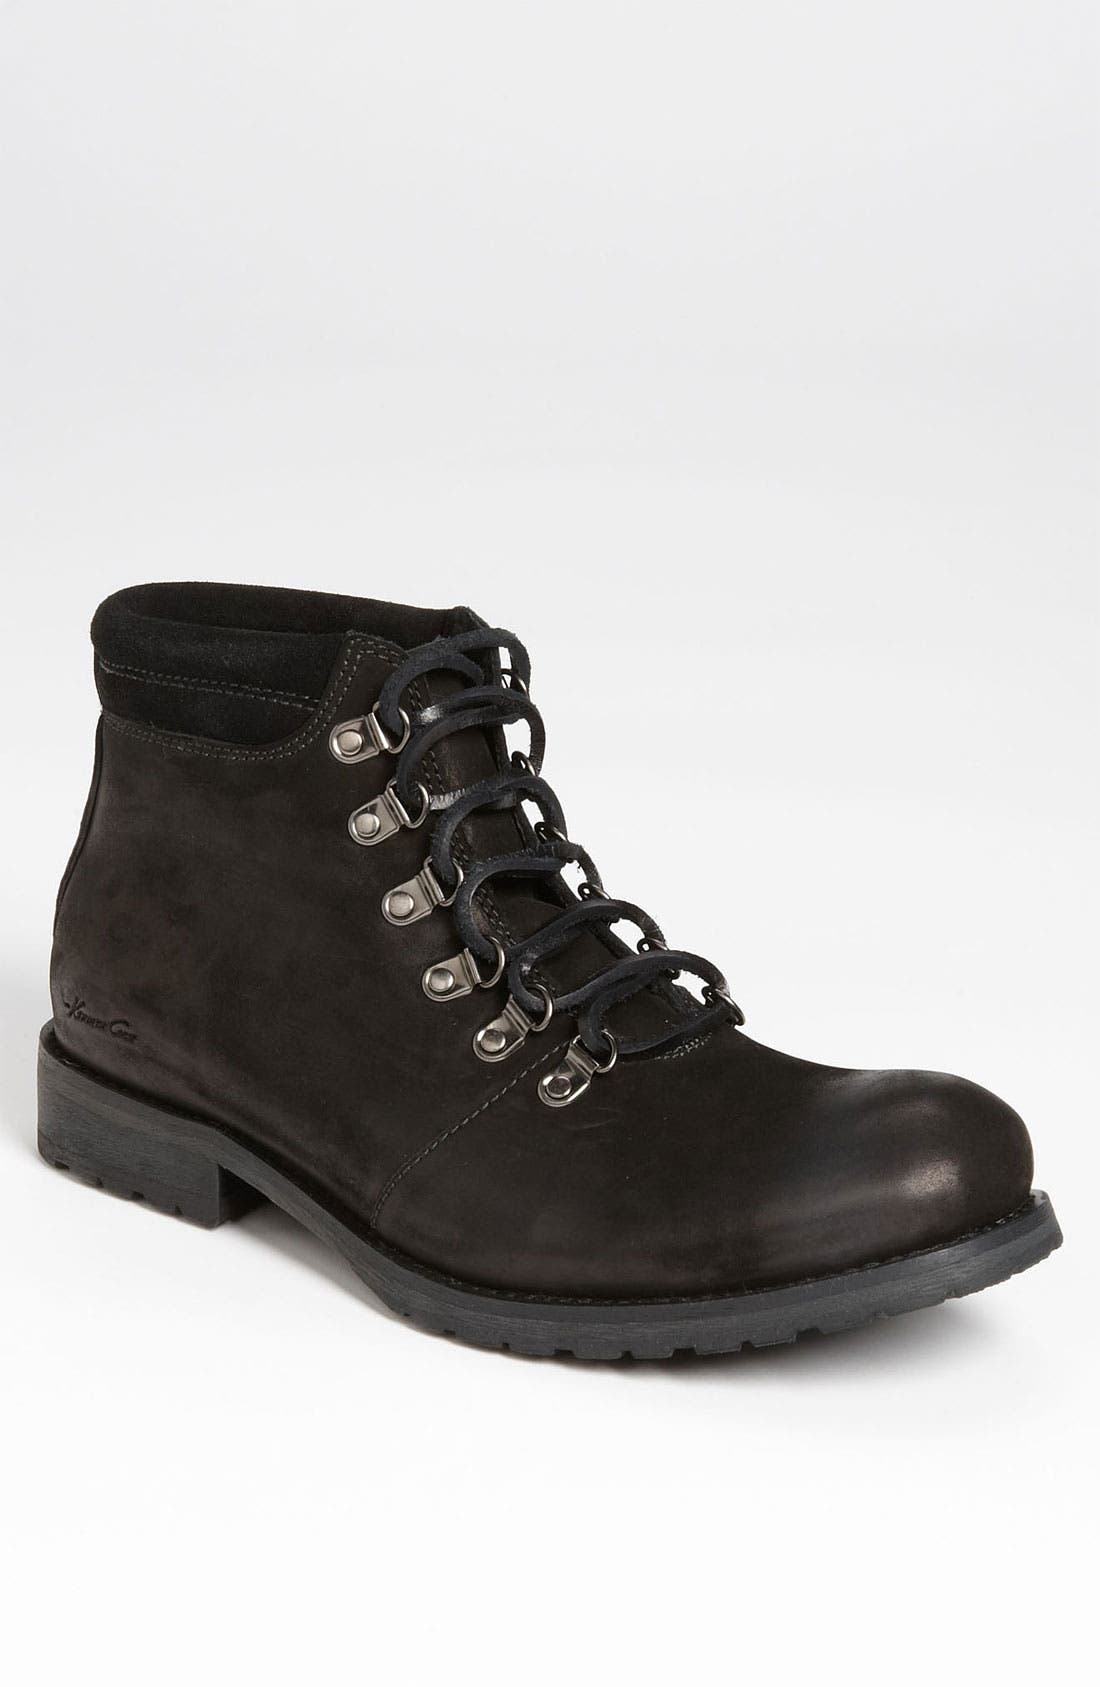 Alternate Image 1 Selected - Kenneth Cole New York 'Arc-tic' Boot (Men)